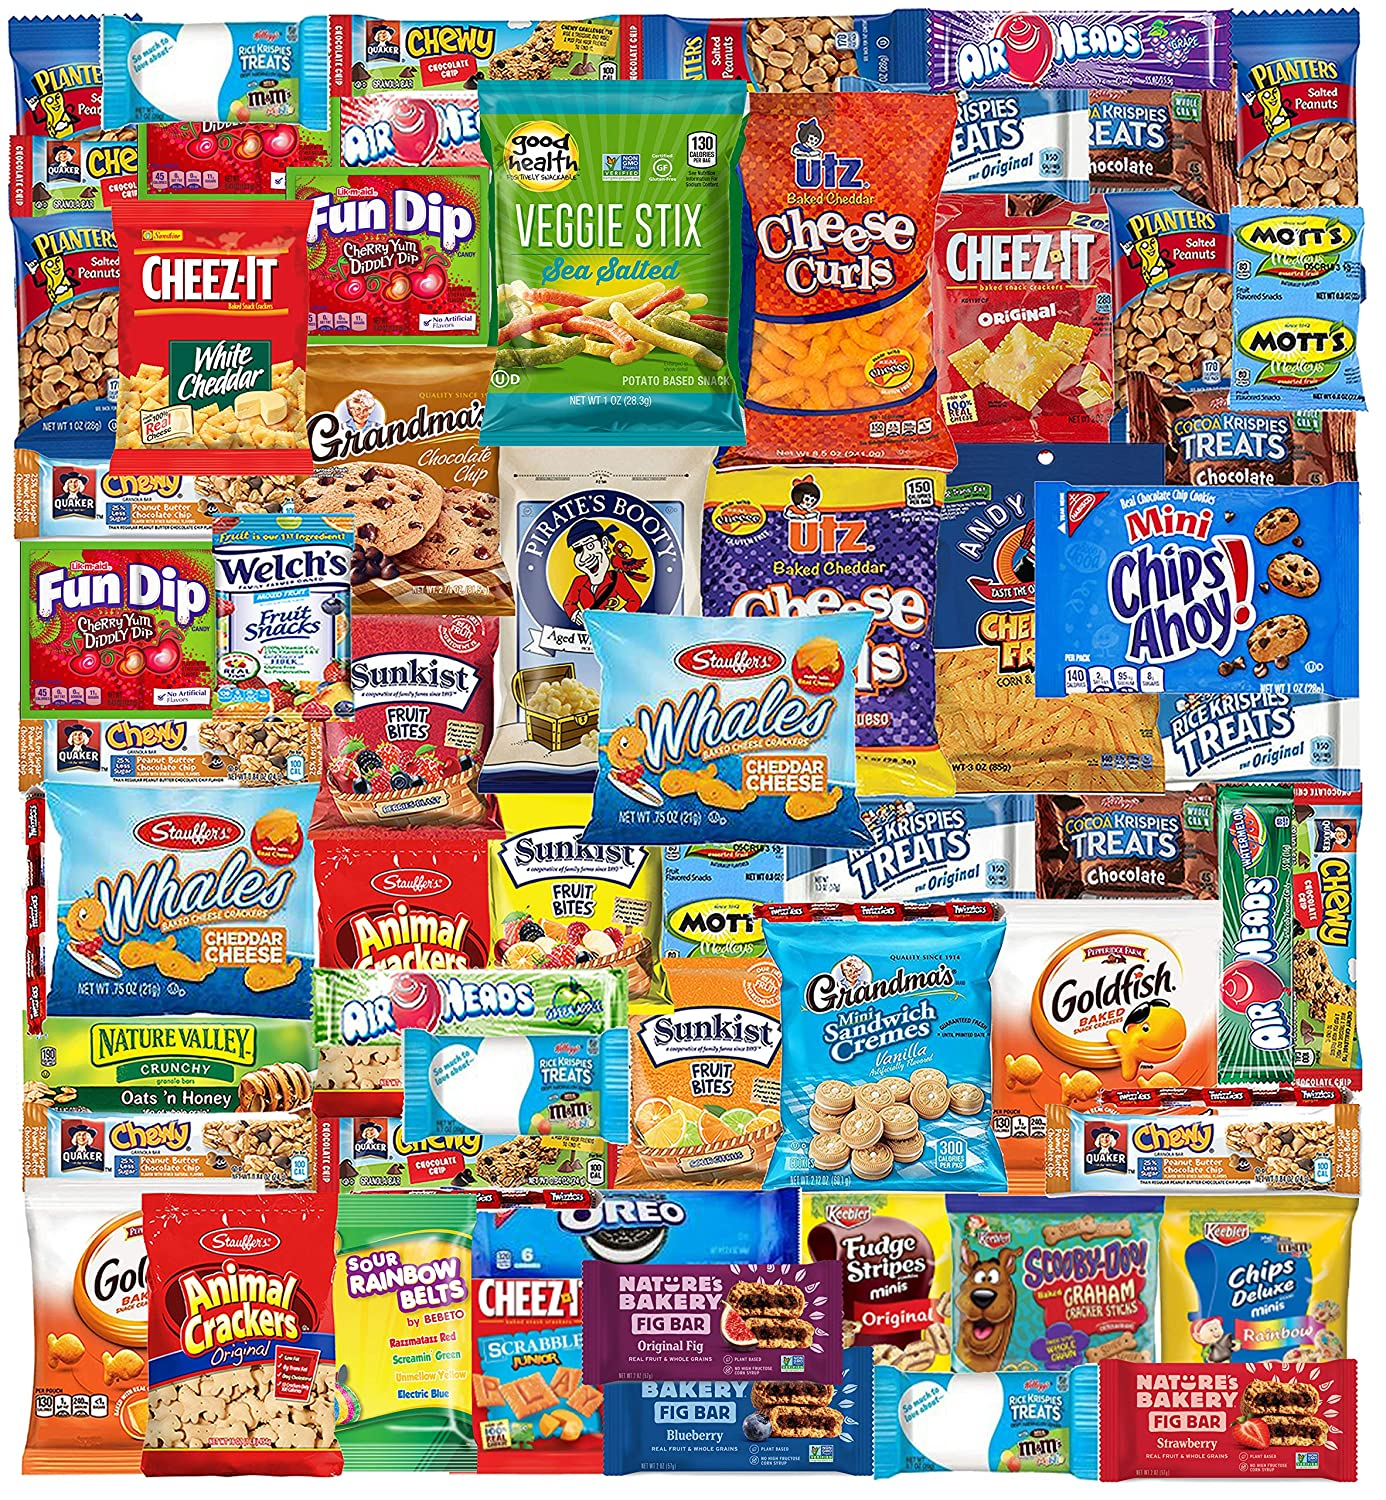 Blue Ribbon Snack Box (55 Count) Snacks Care Package Food Cookies Granola Bar Chips Candy Ultimate Variety Gift Box Pack Assortment Basket Bundle Mix Bulk Sampler College Students Office Christmas